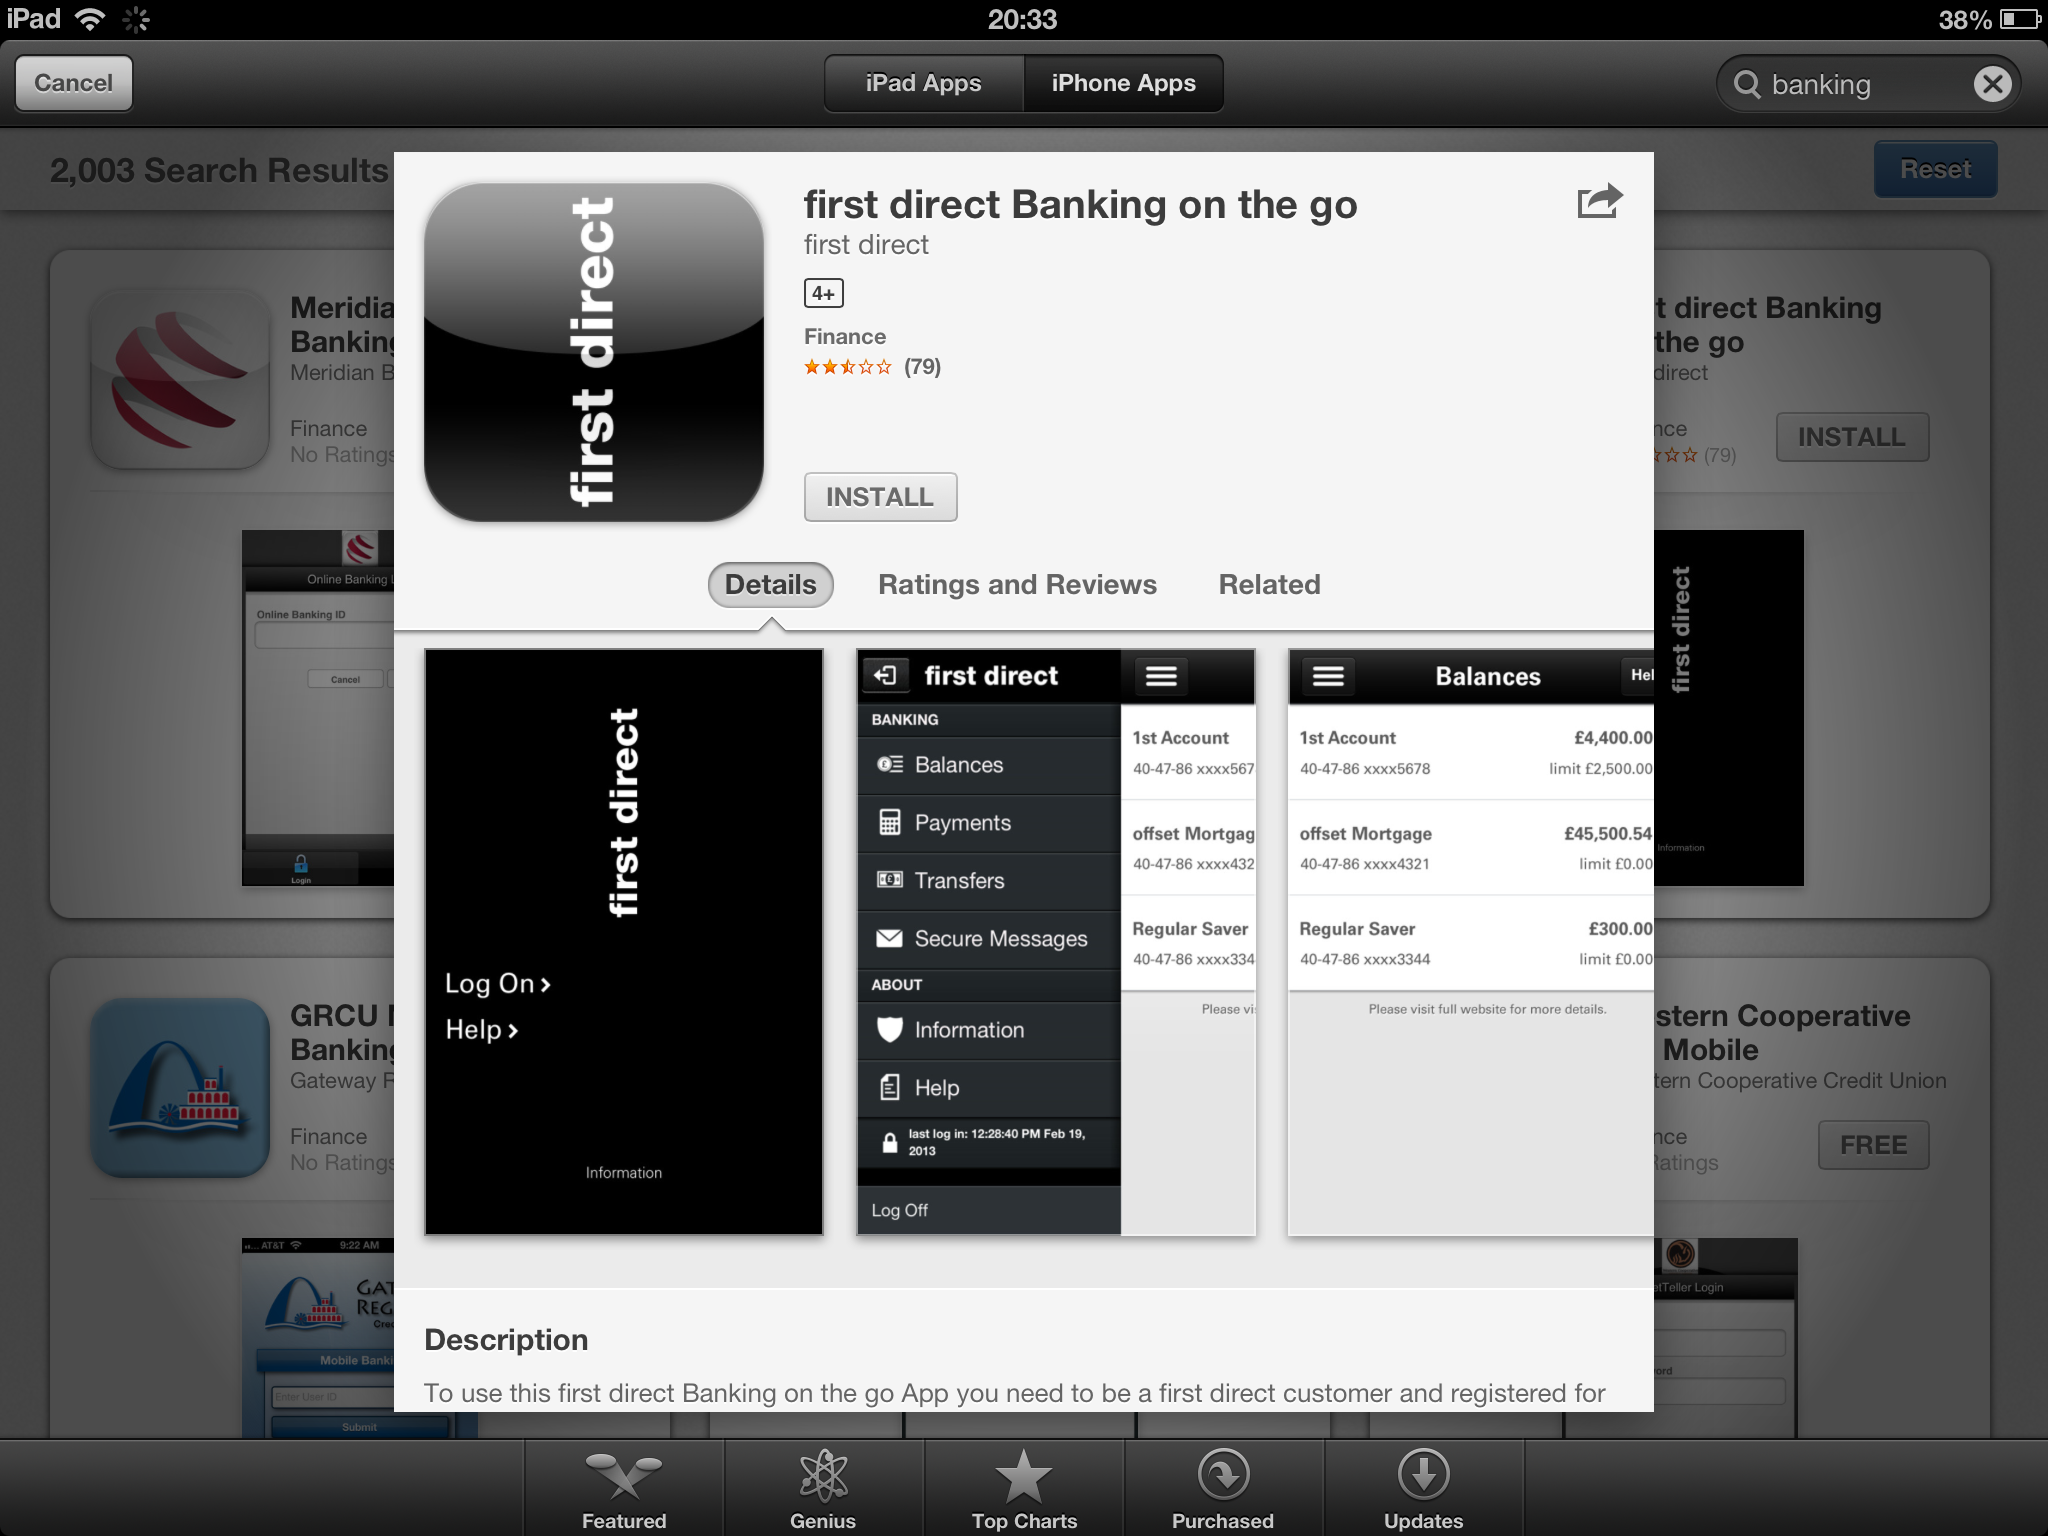 5 Mobile Banking iOS Apps Updated This Week: First Direct